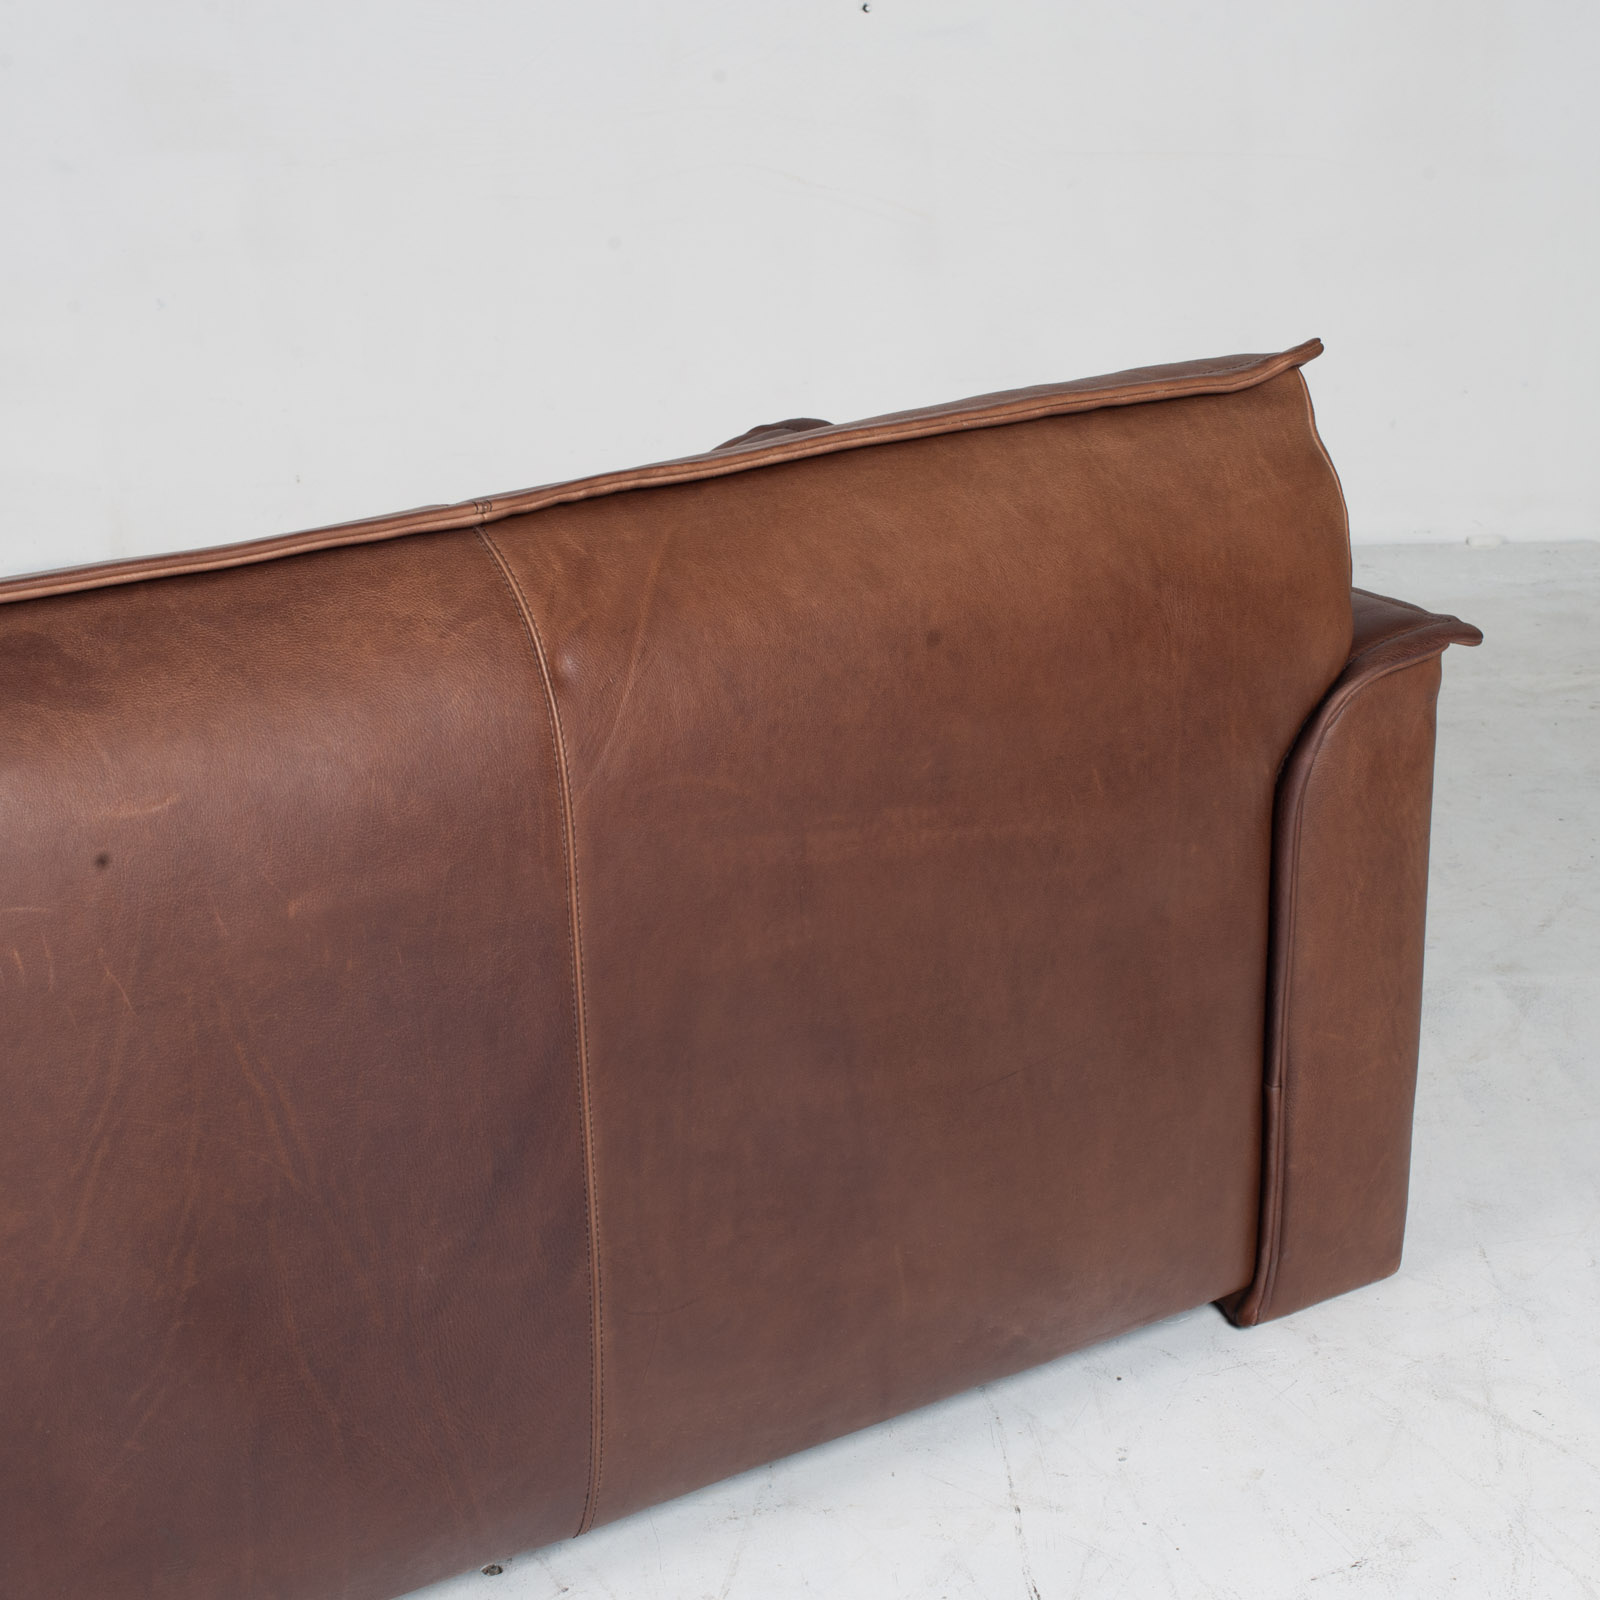 3 Seat Sofa By De Sede In Tan Neck Leather 1960s Denmark 015